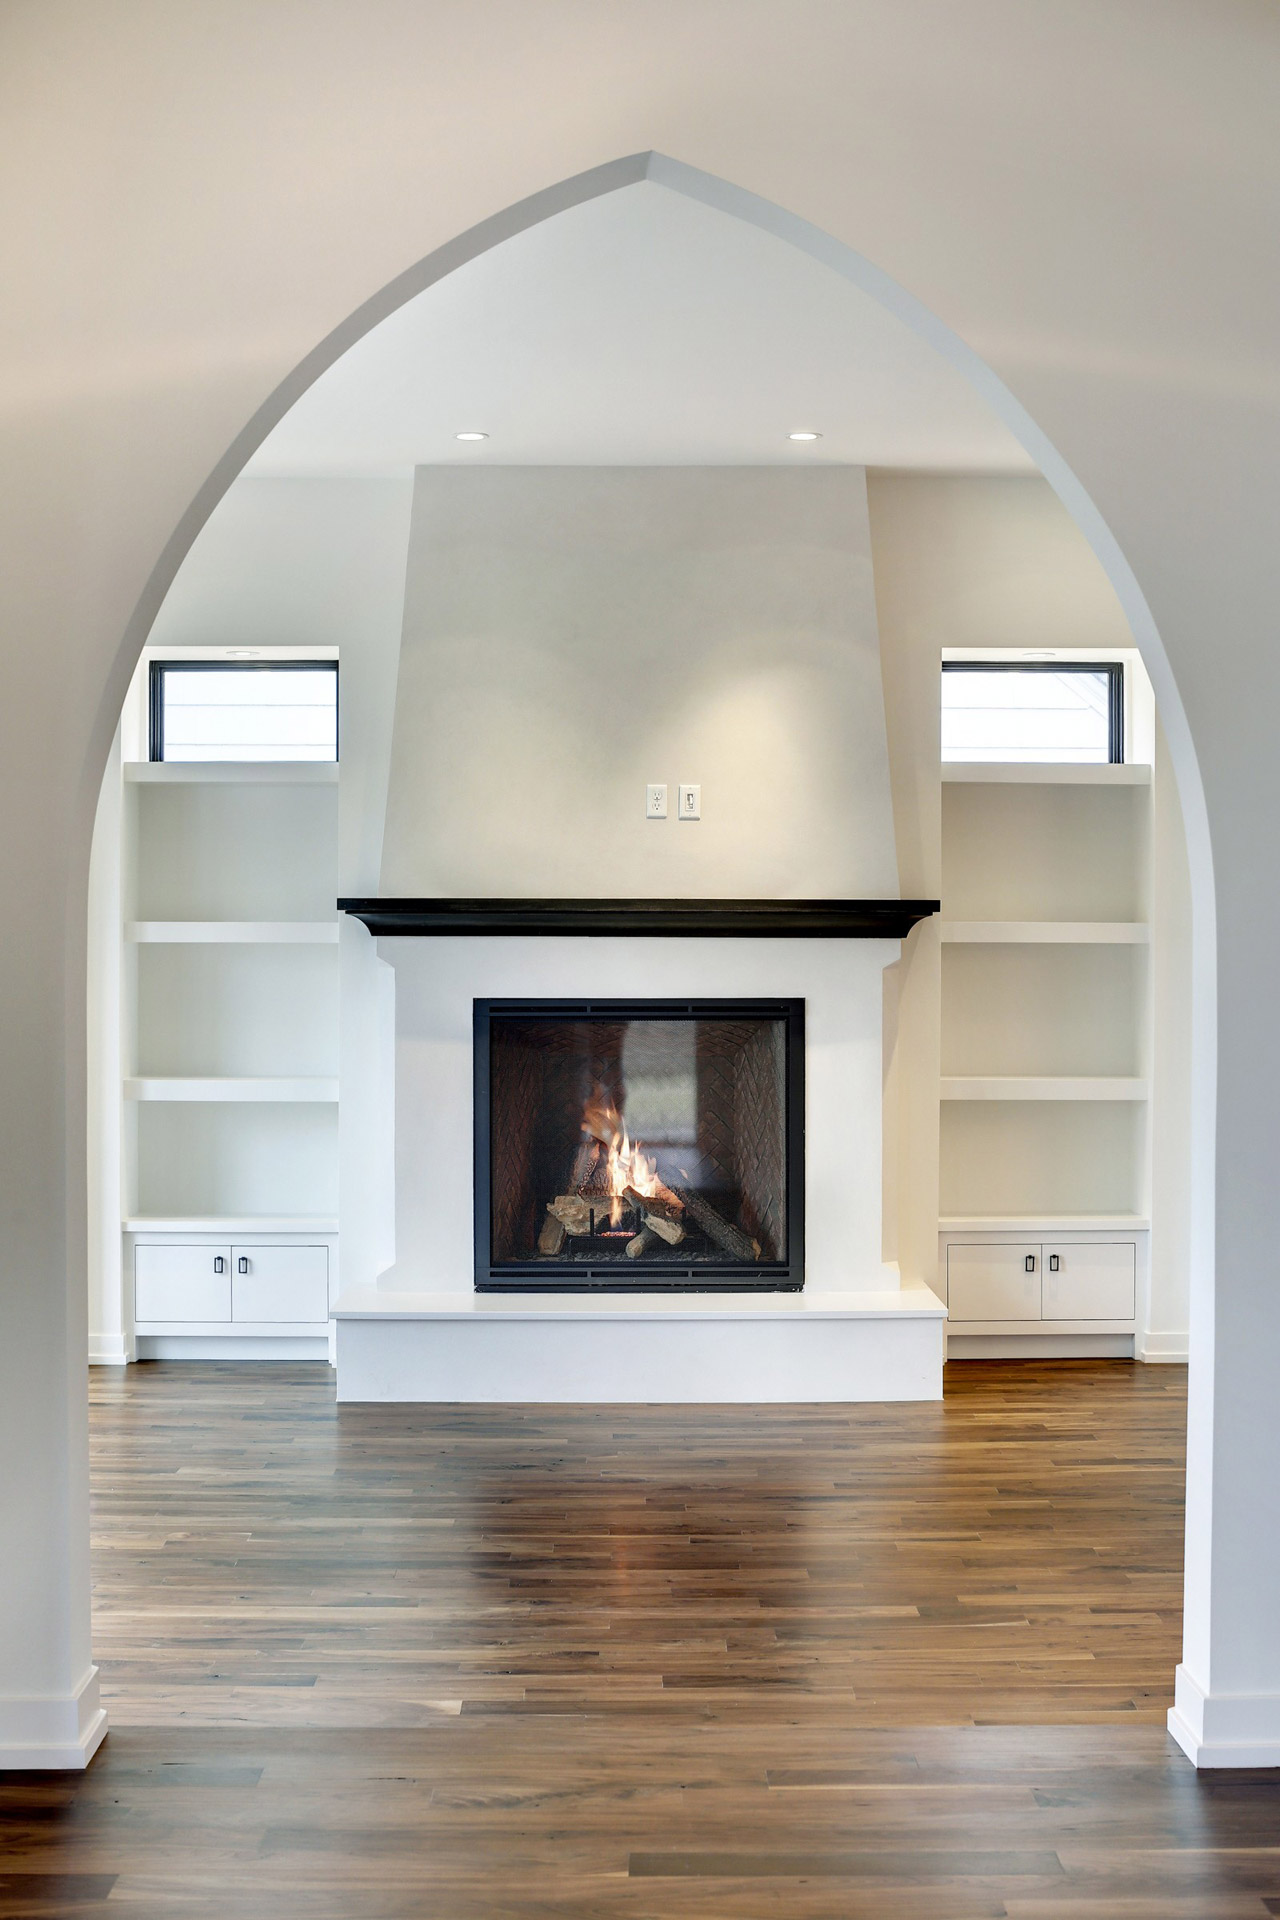 Fireplace and Archway